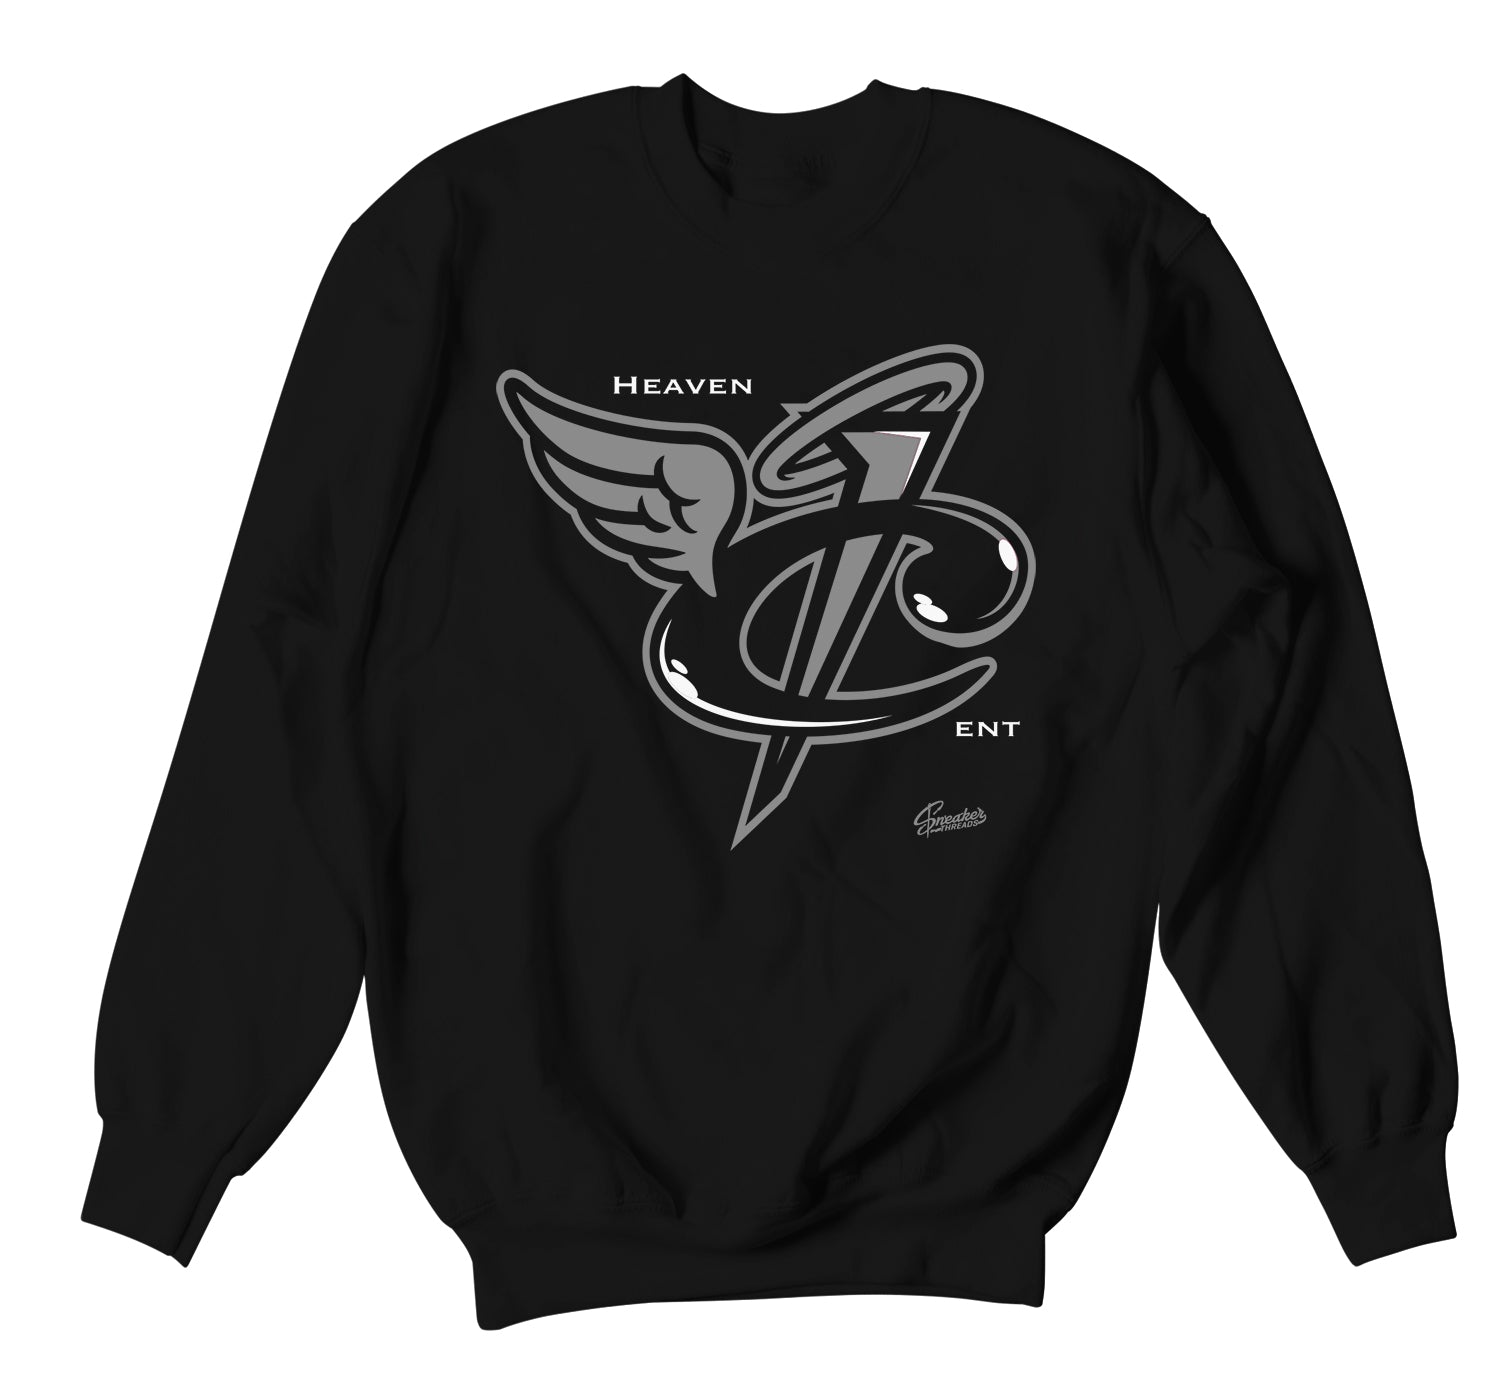 Foamposite Anthracite Sweater - Heaven Cent - Black